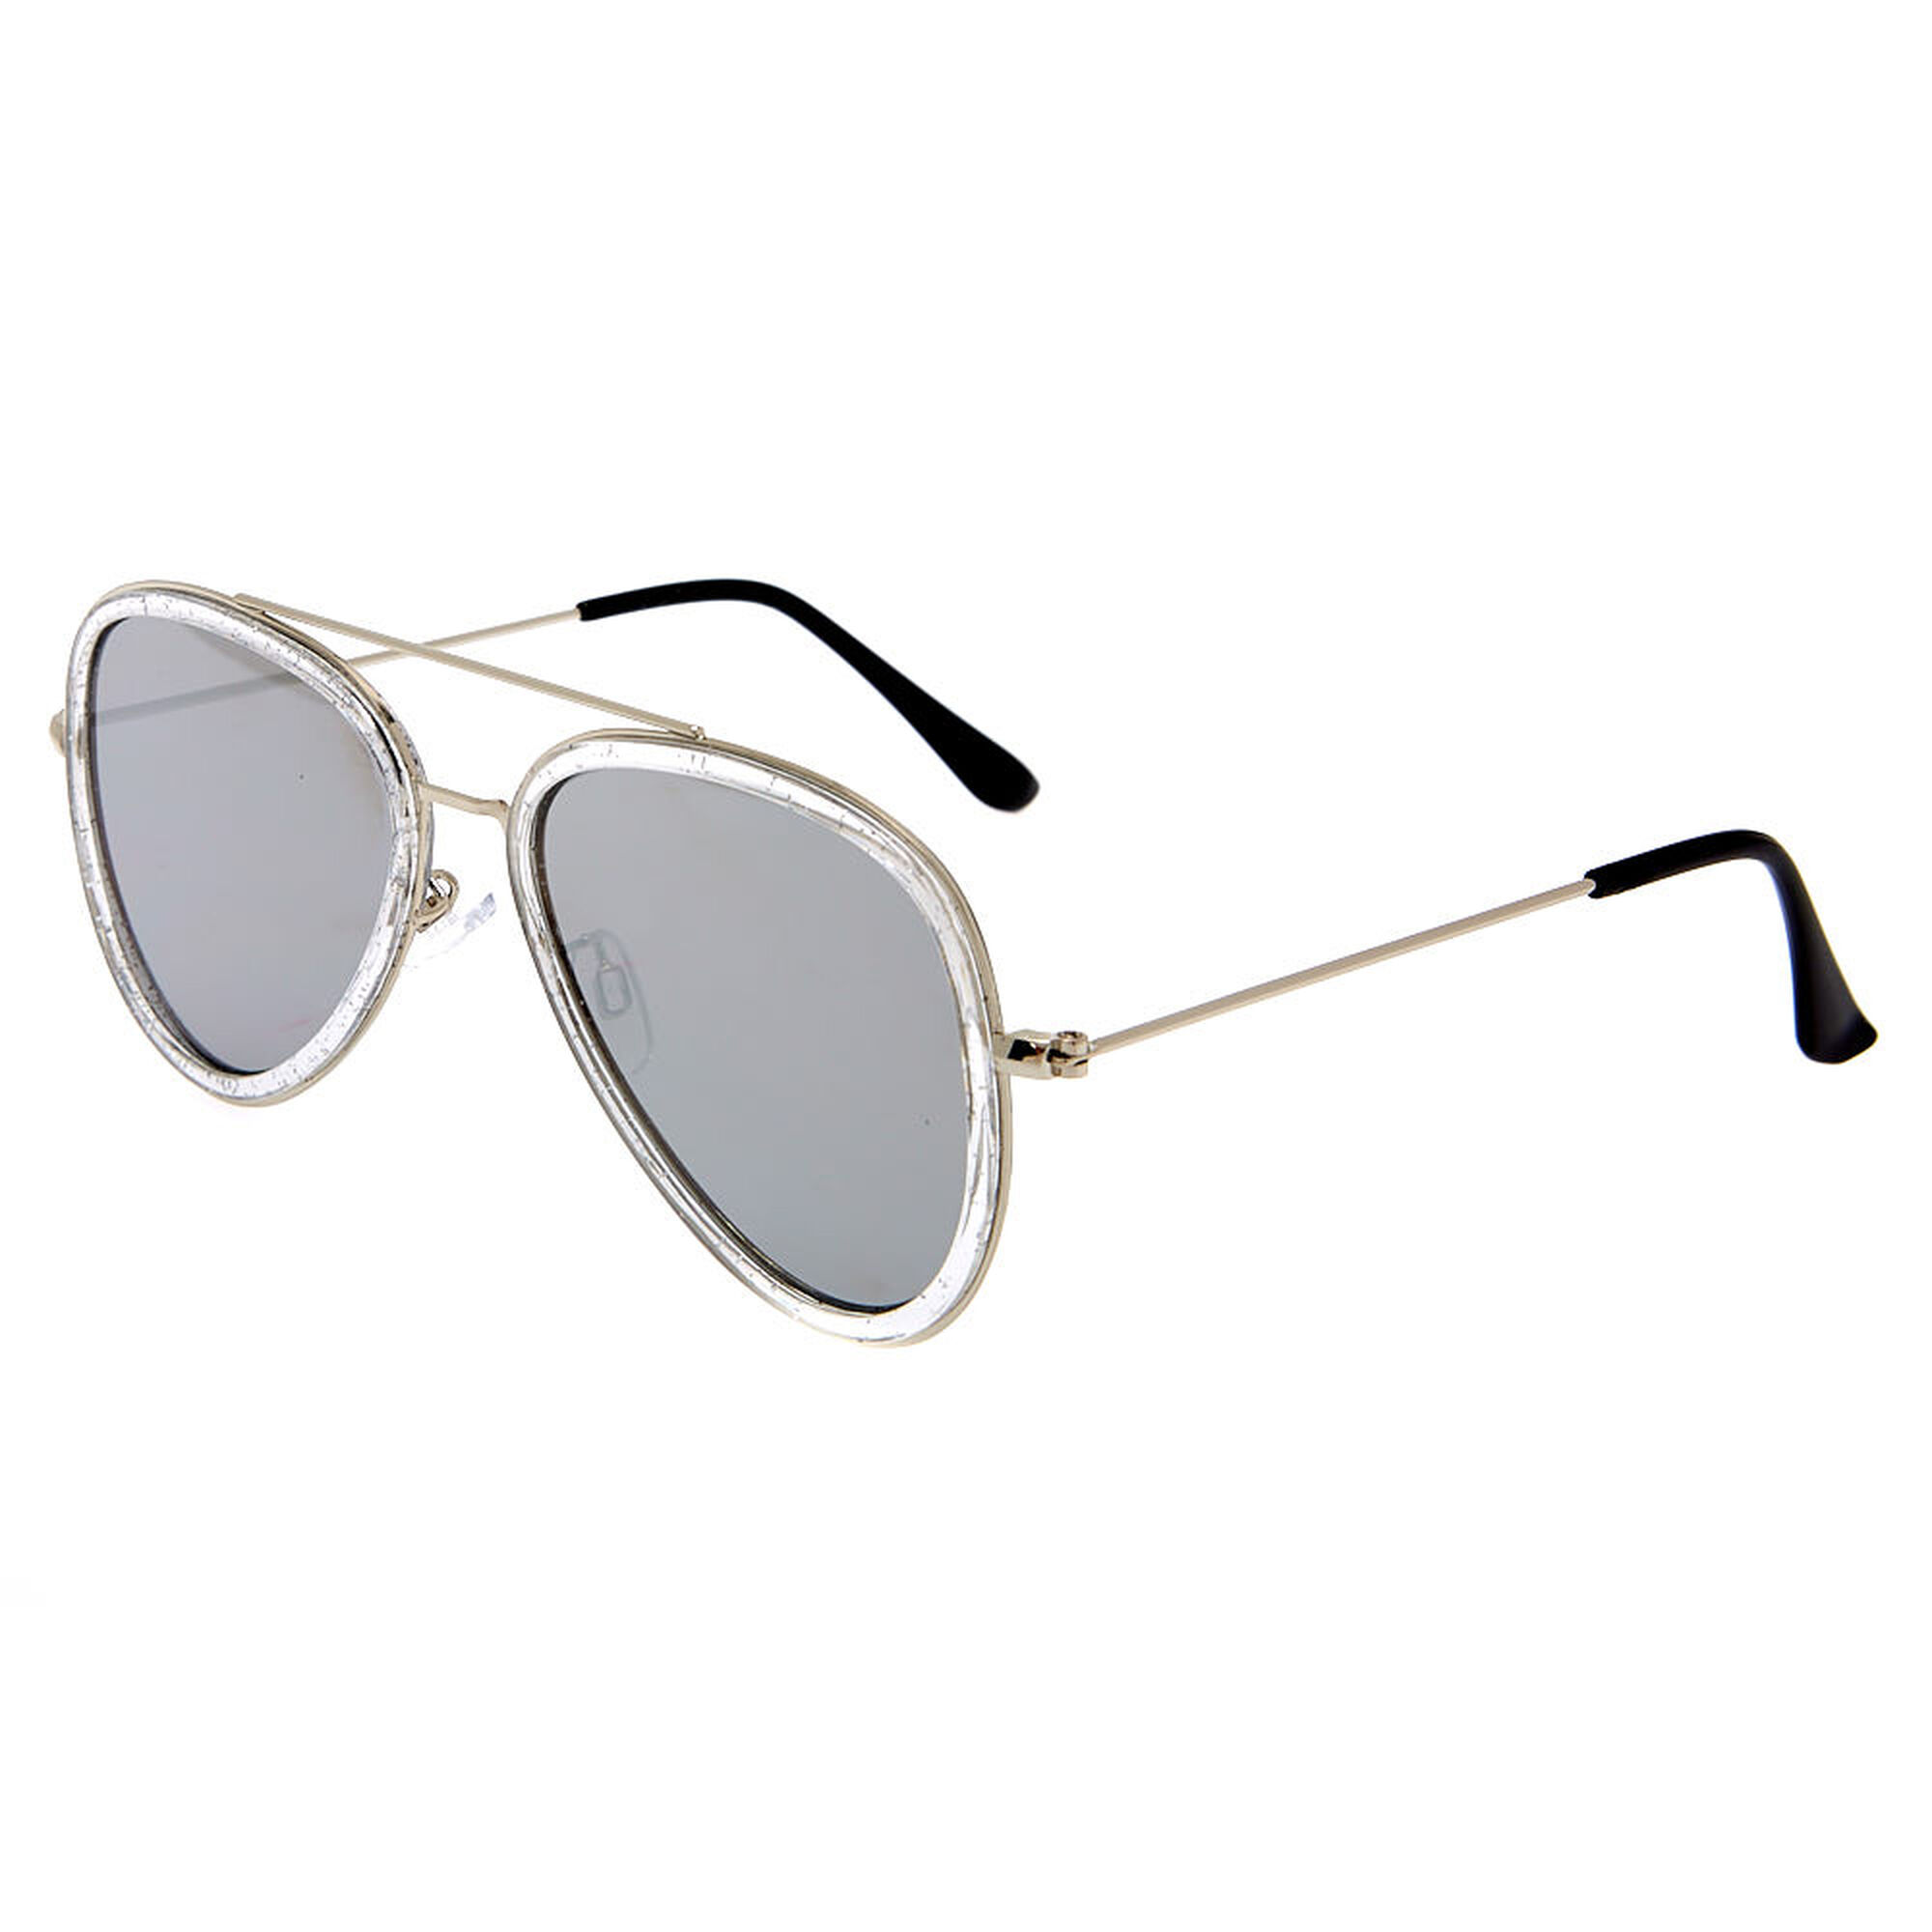 52aa0b1bb1 Metallic Frame Aviator Sunglasses - Silver